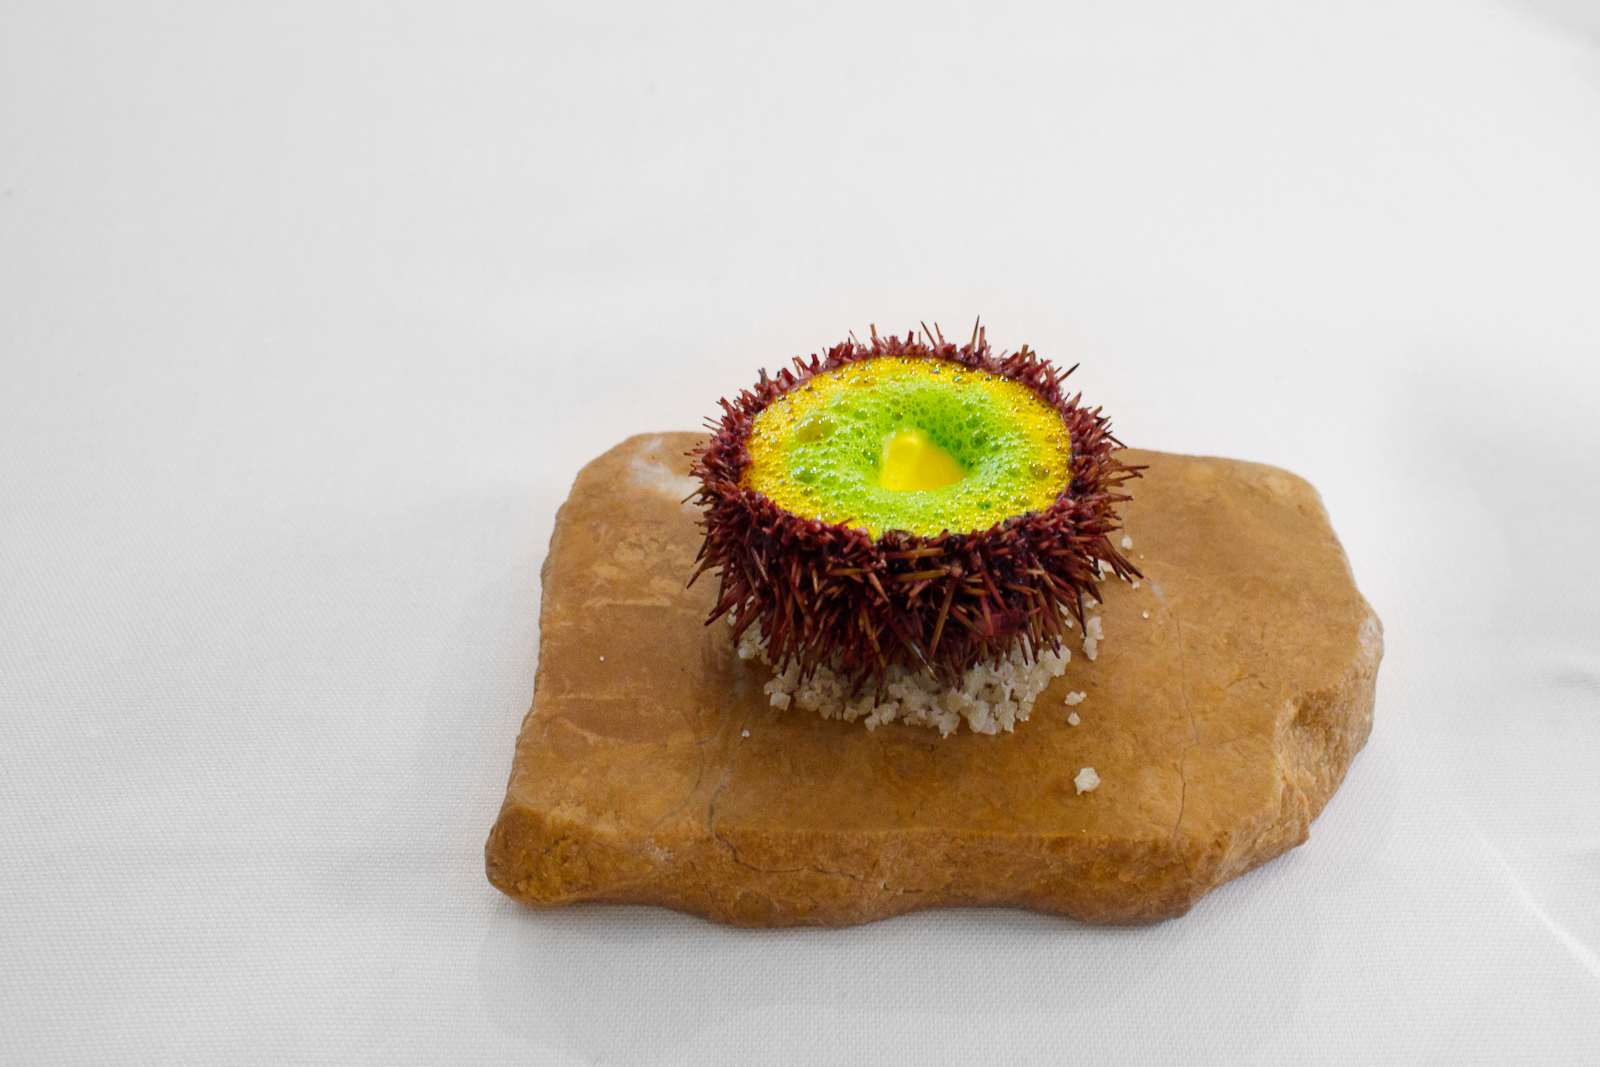 1st Course: Sea urchin from Norway served with carrot velouté, parsley soup, sediment of coldpressed rape seed oil and saffron cream